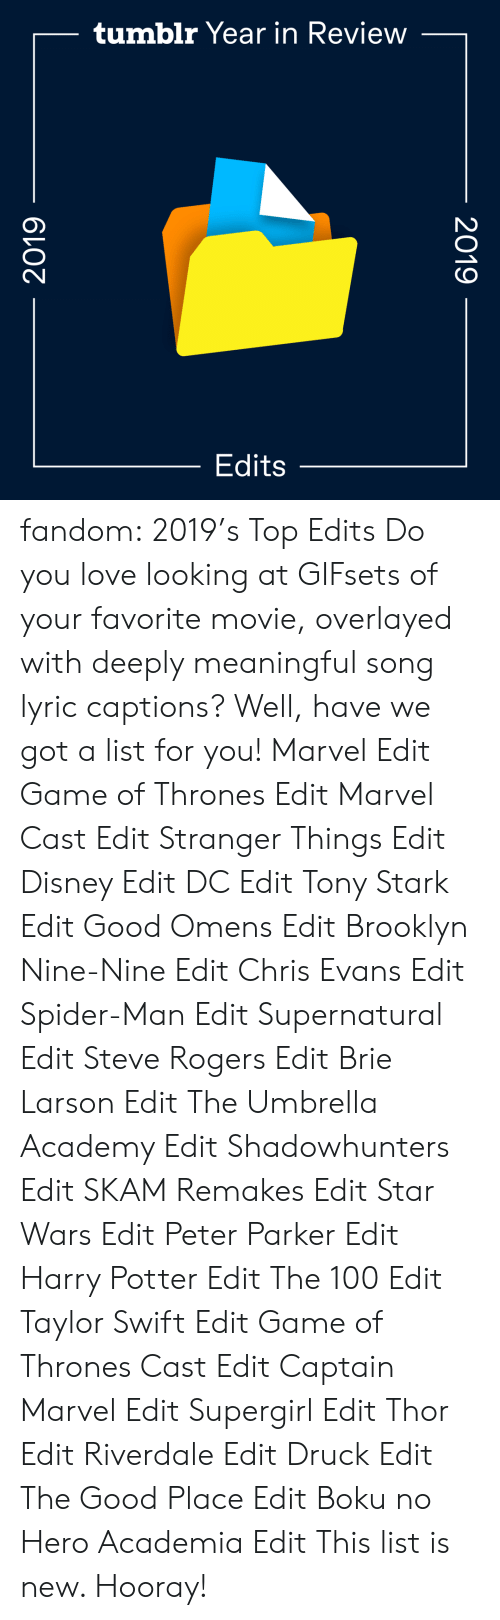 potter: tumblr Year in Review  Edits  2019  2019 fandom:  2019's Top Edits  Do you love looking at GIFsets of your favorite movie, overlayed with deeply meaningful song lyric captions? Well, have we got a list for you!  Marvel Edit  Game of Thrones Edit  Marvel Cast Edit  Stranger Things Edit  Disney Edit  DC Edit  Tony Stark Edit  Good Omens Edit  Brooklyn Nine-Nine Edit  Chris Evans Edit  Spider-Man Edit  Supernatural Edit  Steve Rogers Edit  Brie Larson Edit  The Umbrella Academy Edit  Shadowhunters Edit  SKAM Remakes Edit  Star Wars Edit  Peter Parker Edit  Harry Potter Edit  The 100 Edit  Taylor Swift Edit  Game of Thrones Cast Edit  Captain Marvel Edit  Supergirl Edit  Thor Edit  Riverdale Edit  Druck Edit  The Good Place Edit  Boku no Hero Academia Edit This list is new. Hooray!